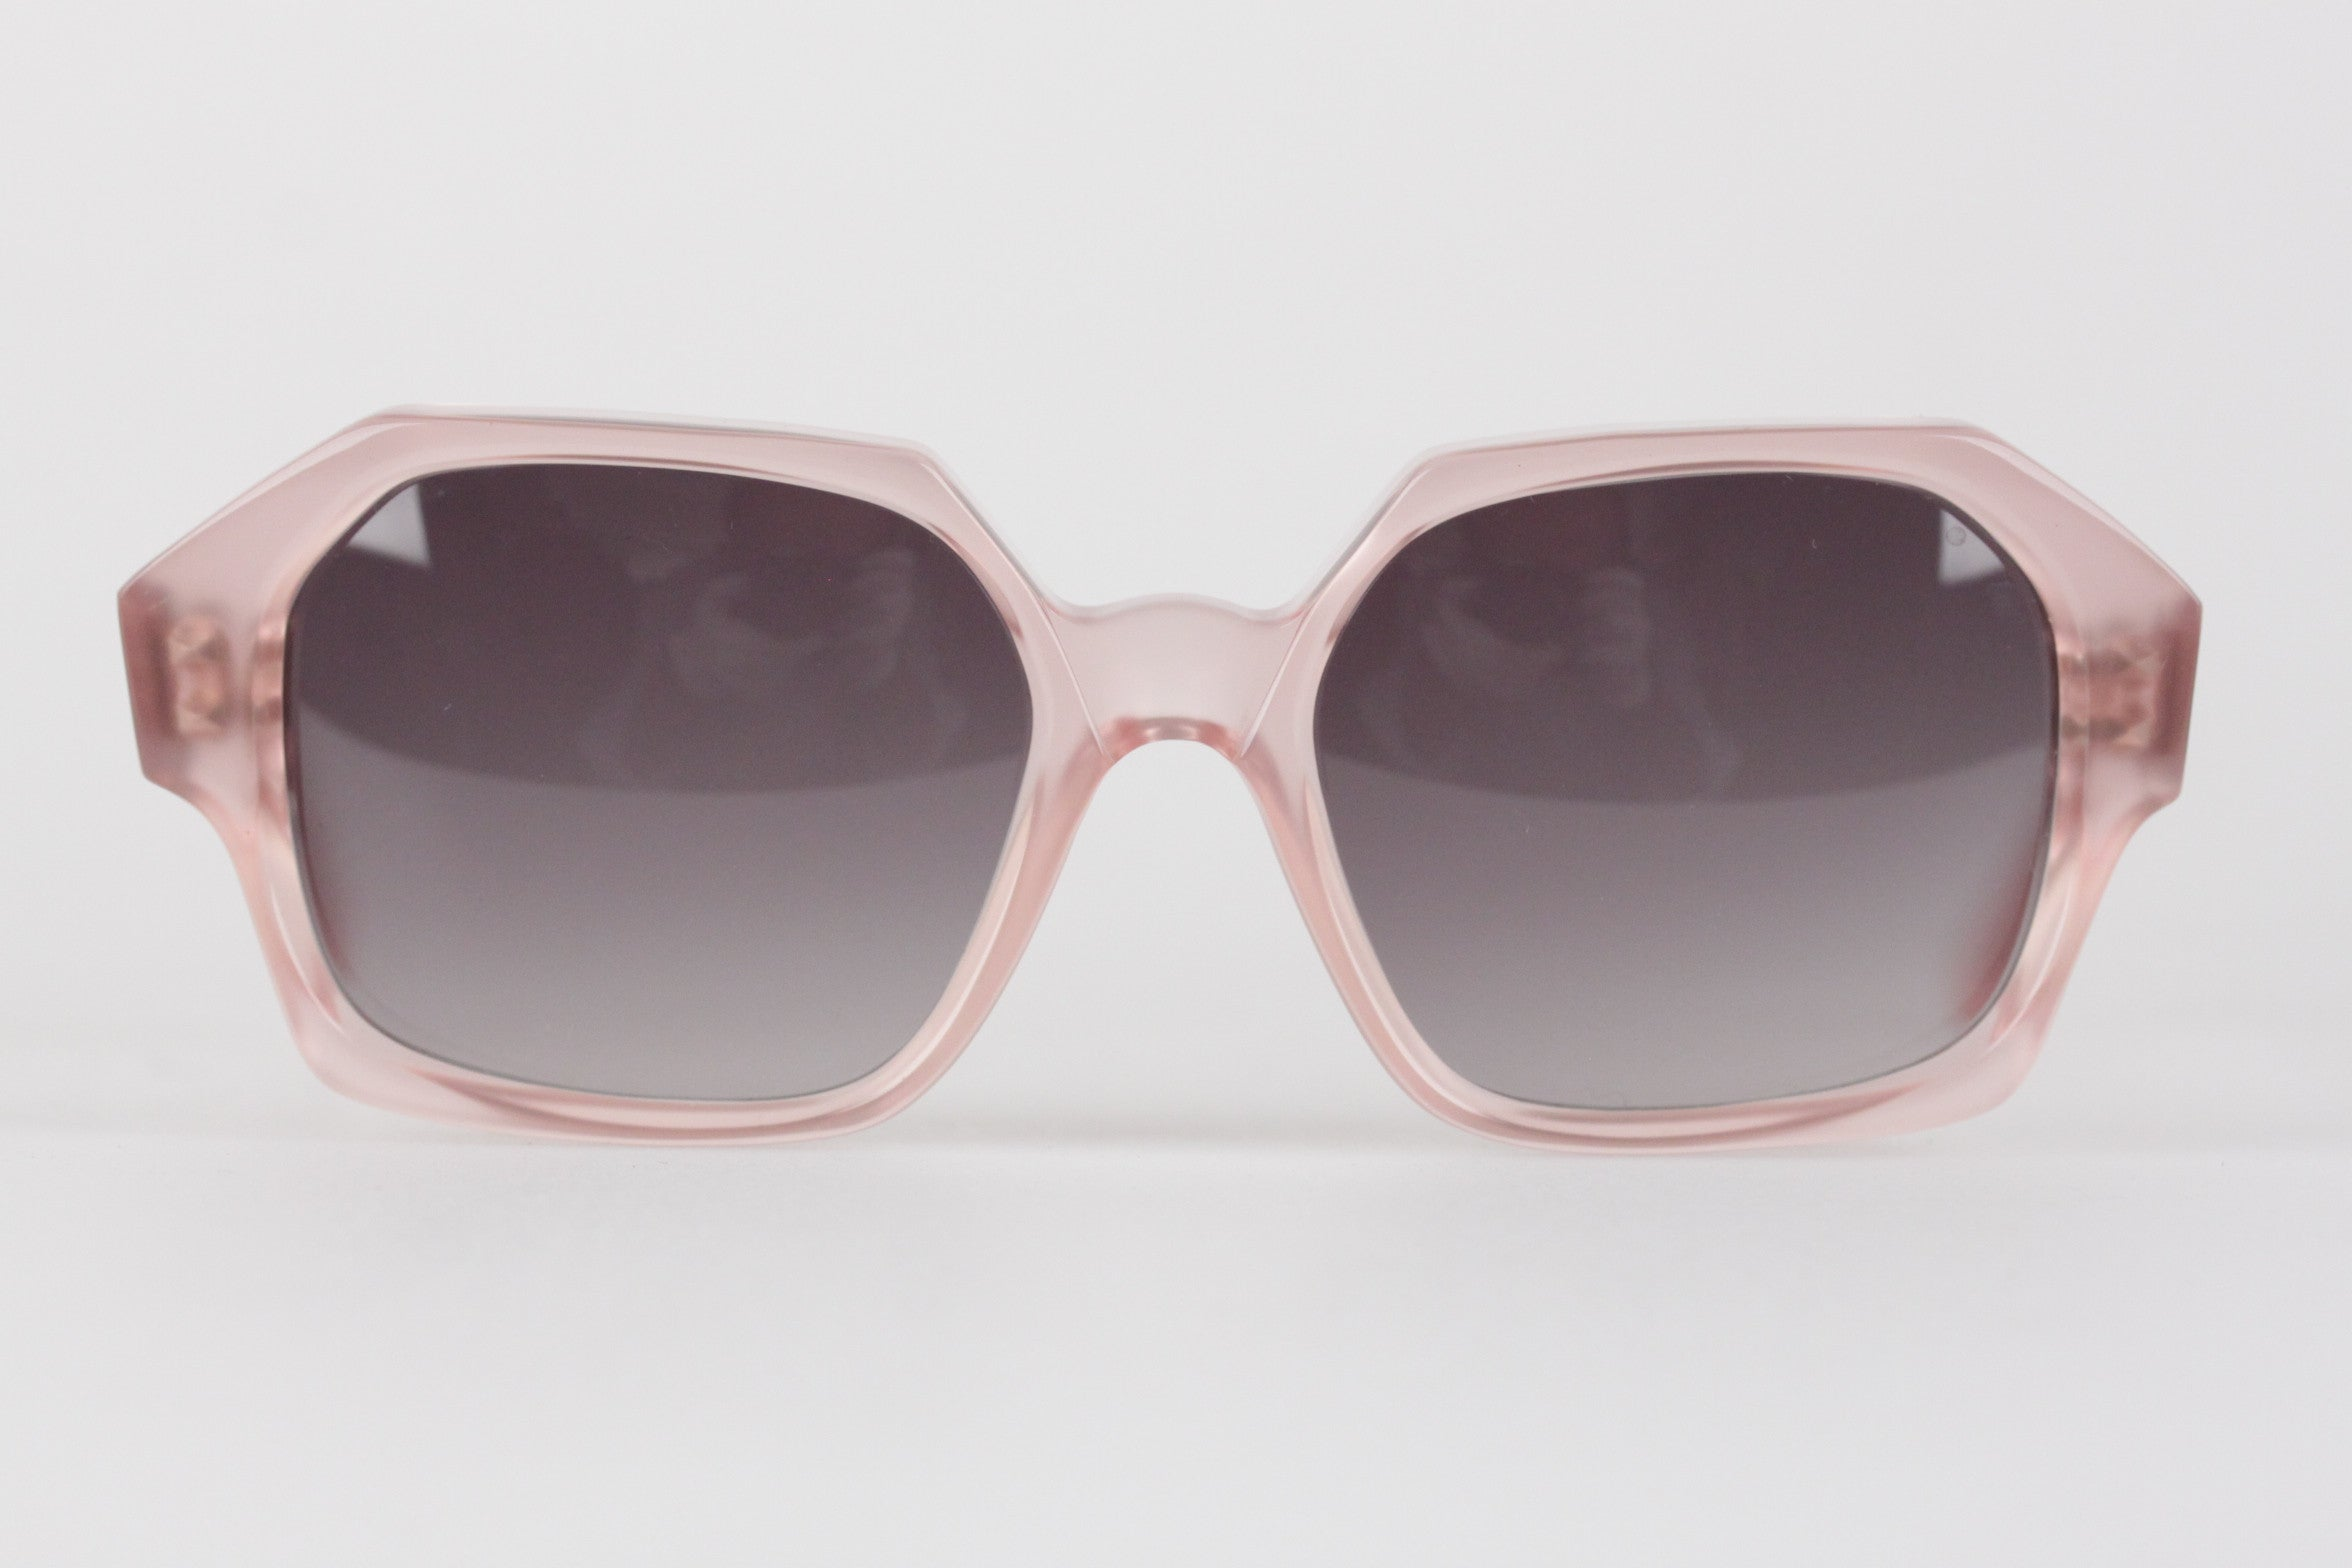 a0bdb28c40b YVES SAINT LAURENT Vintage MINT Rare PINK Sunglasses APATURA 48 18 For Sale  at 1stdibs